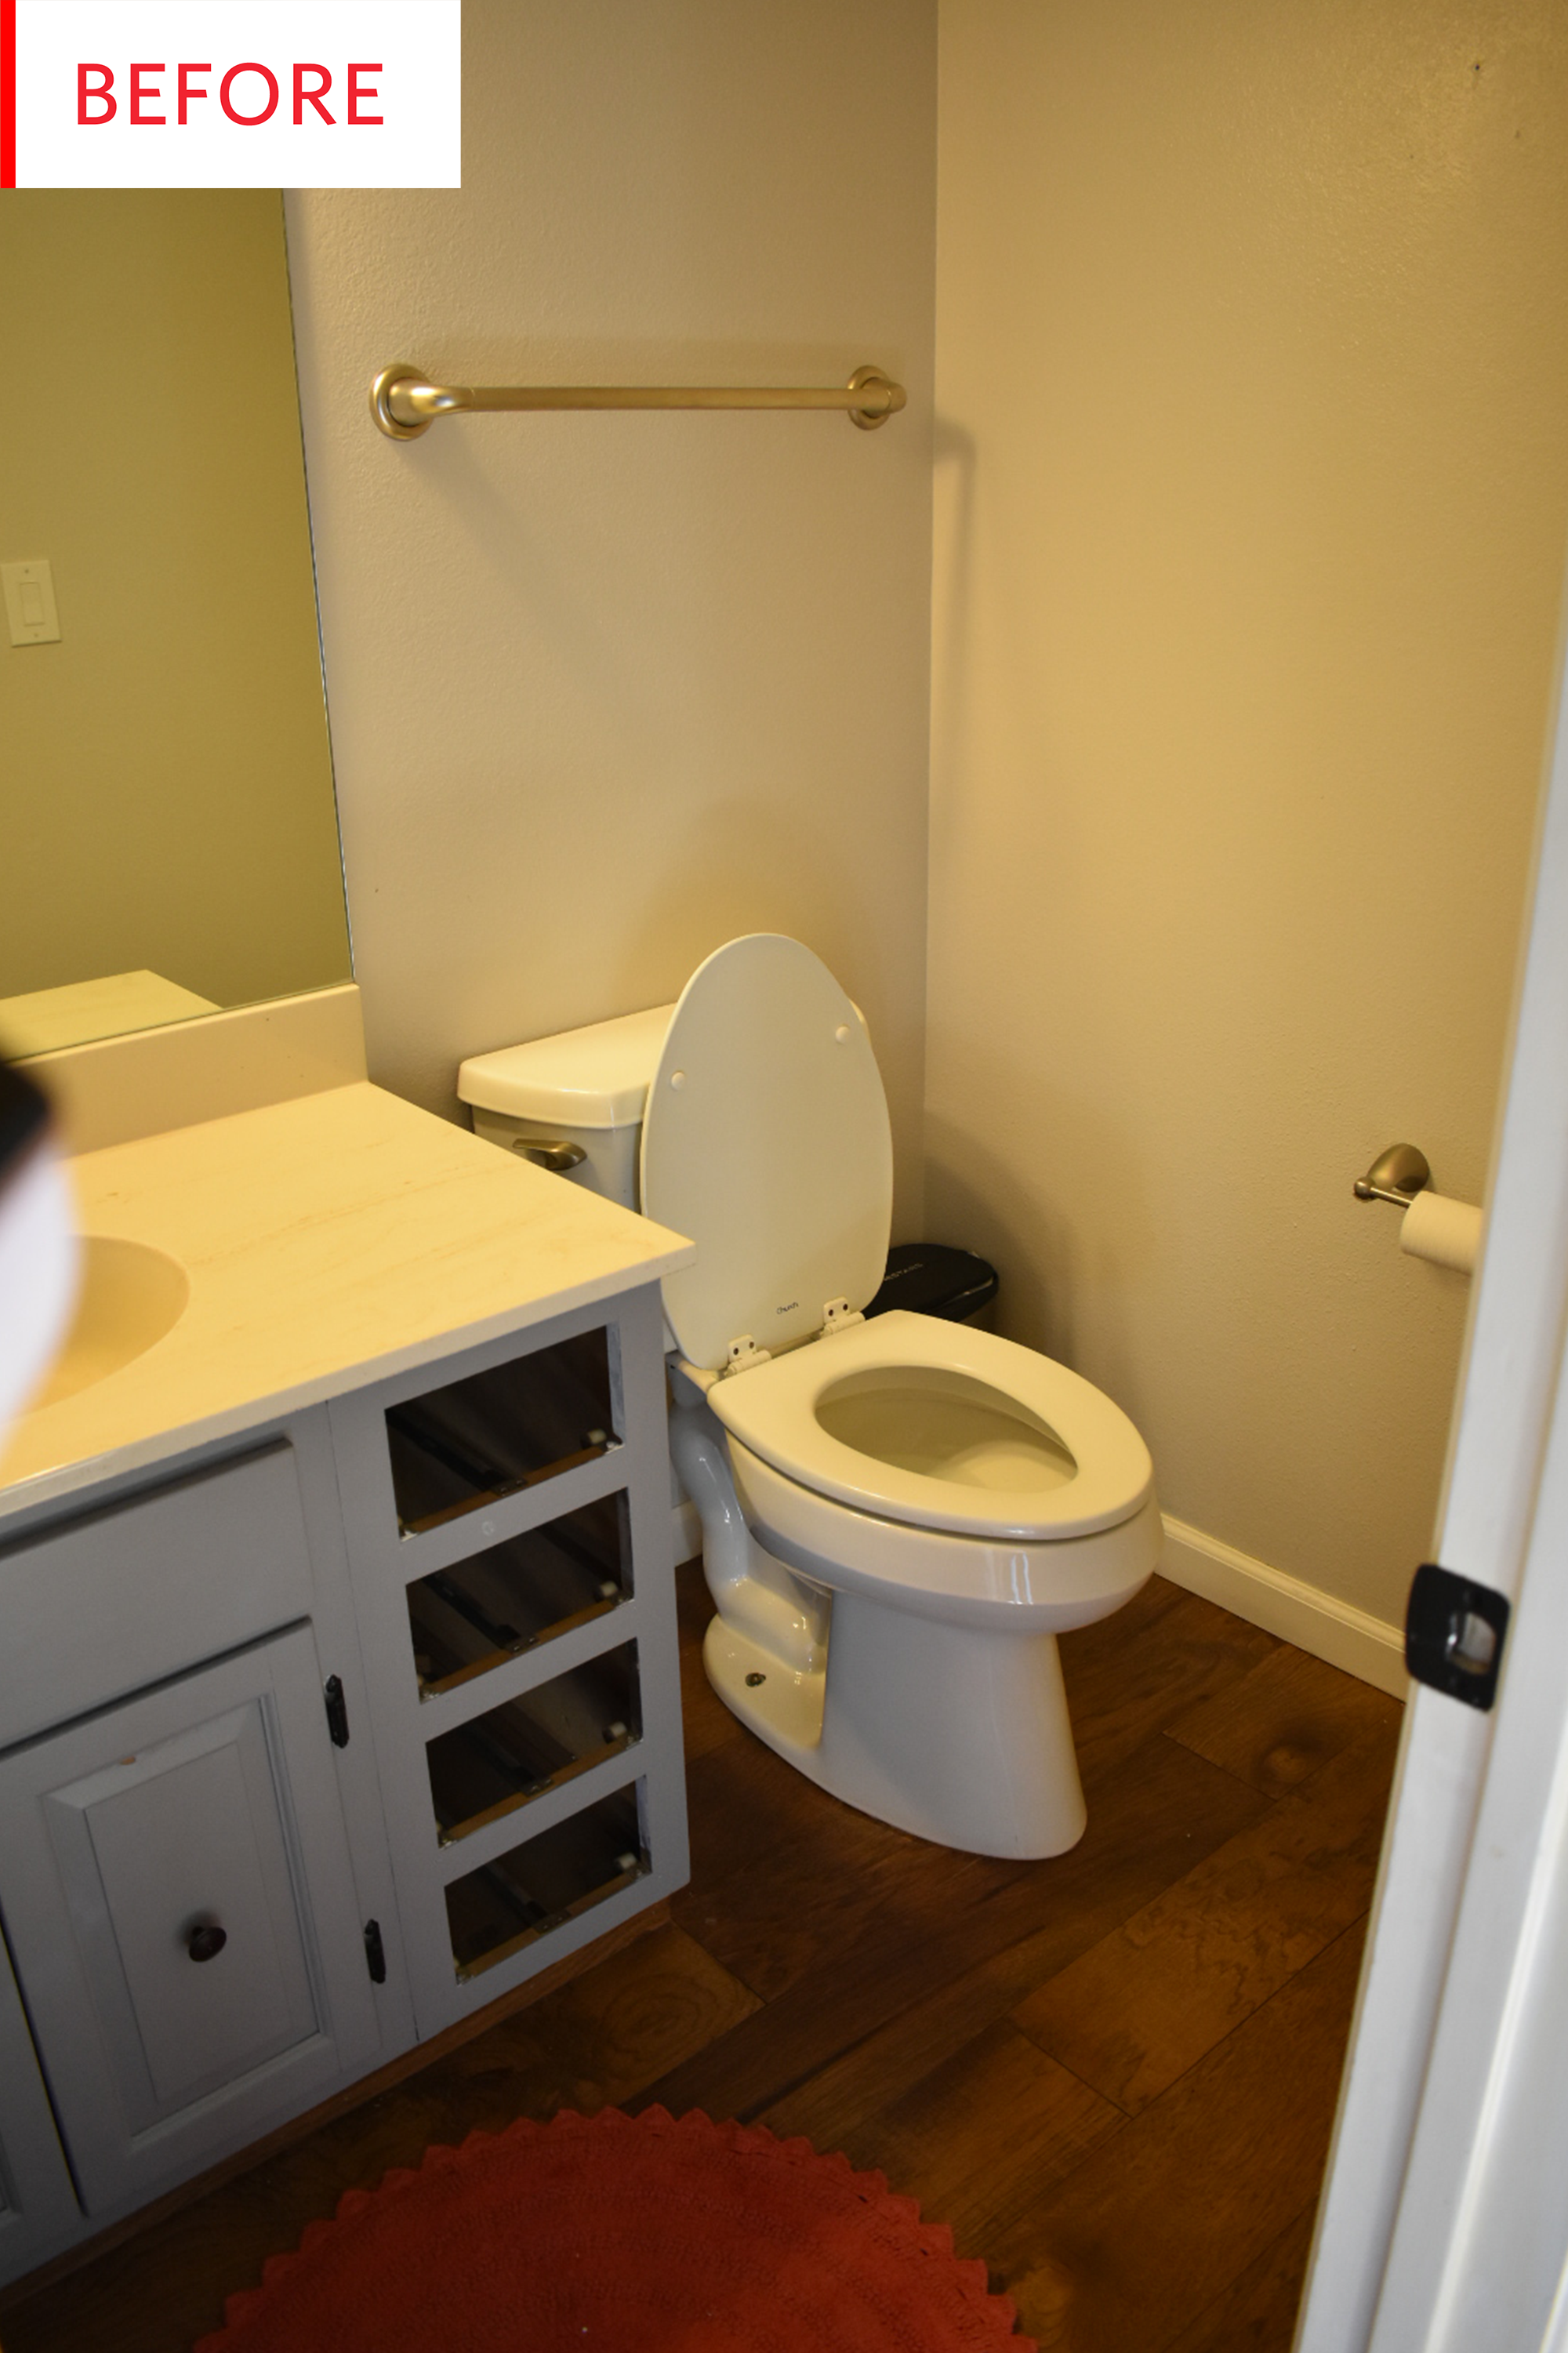 Bathroom Wallpaper - Remodel Before After | Apartment Therapy